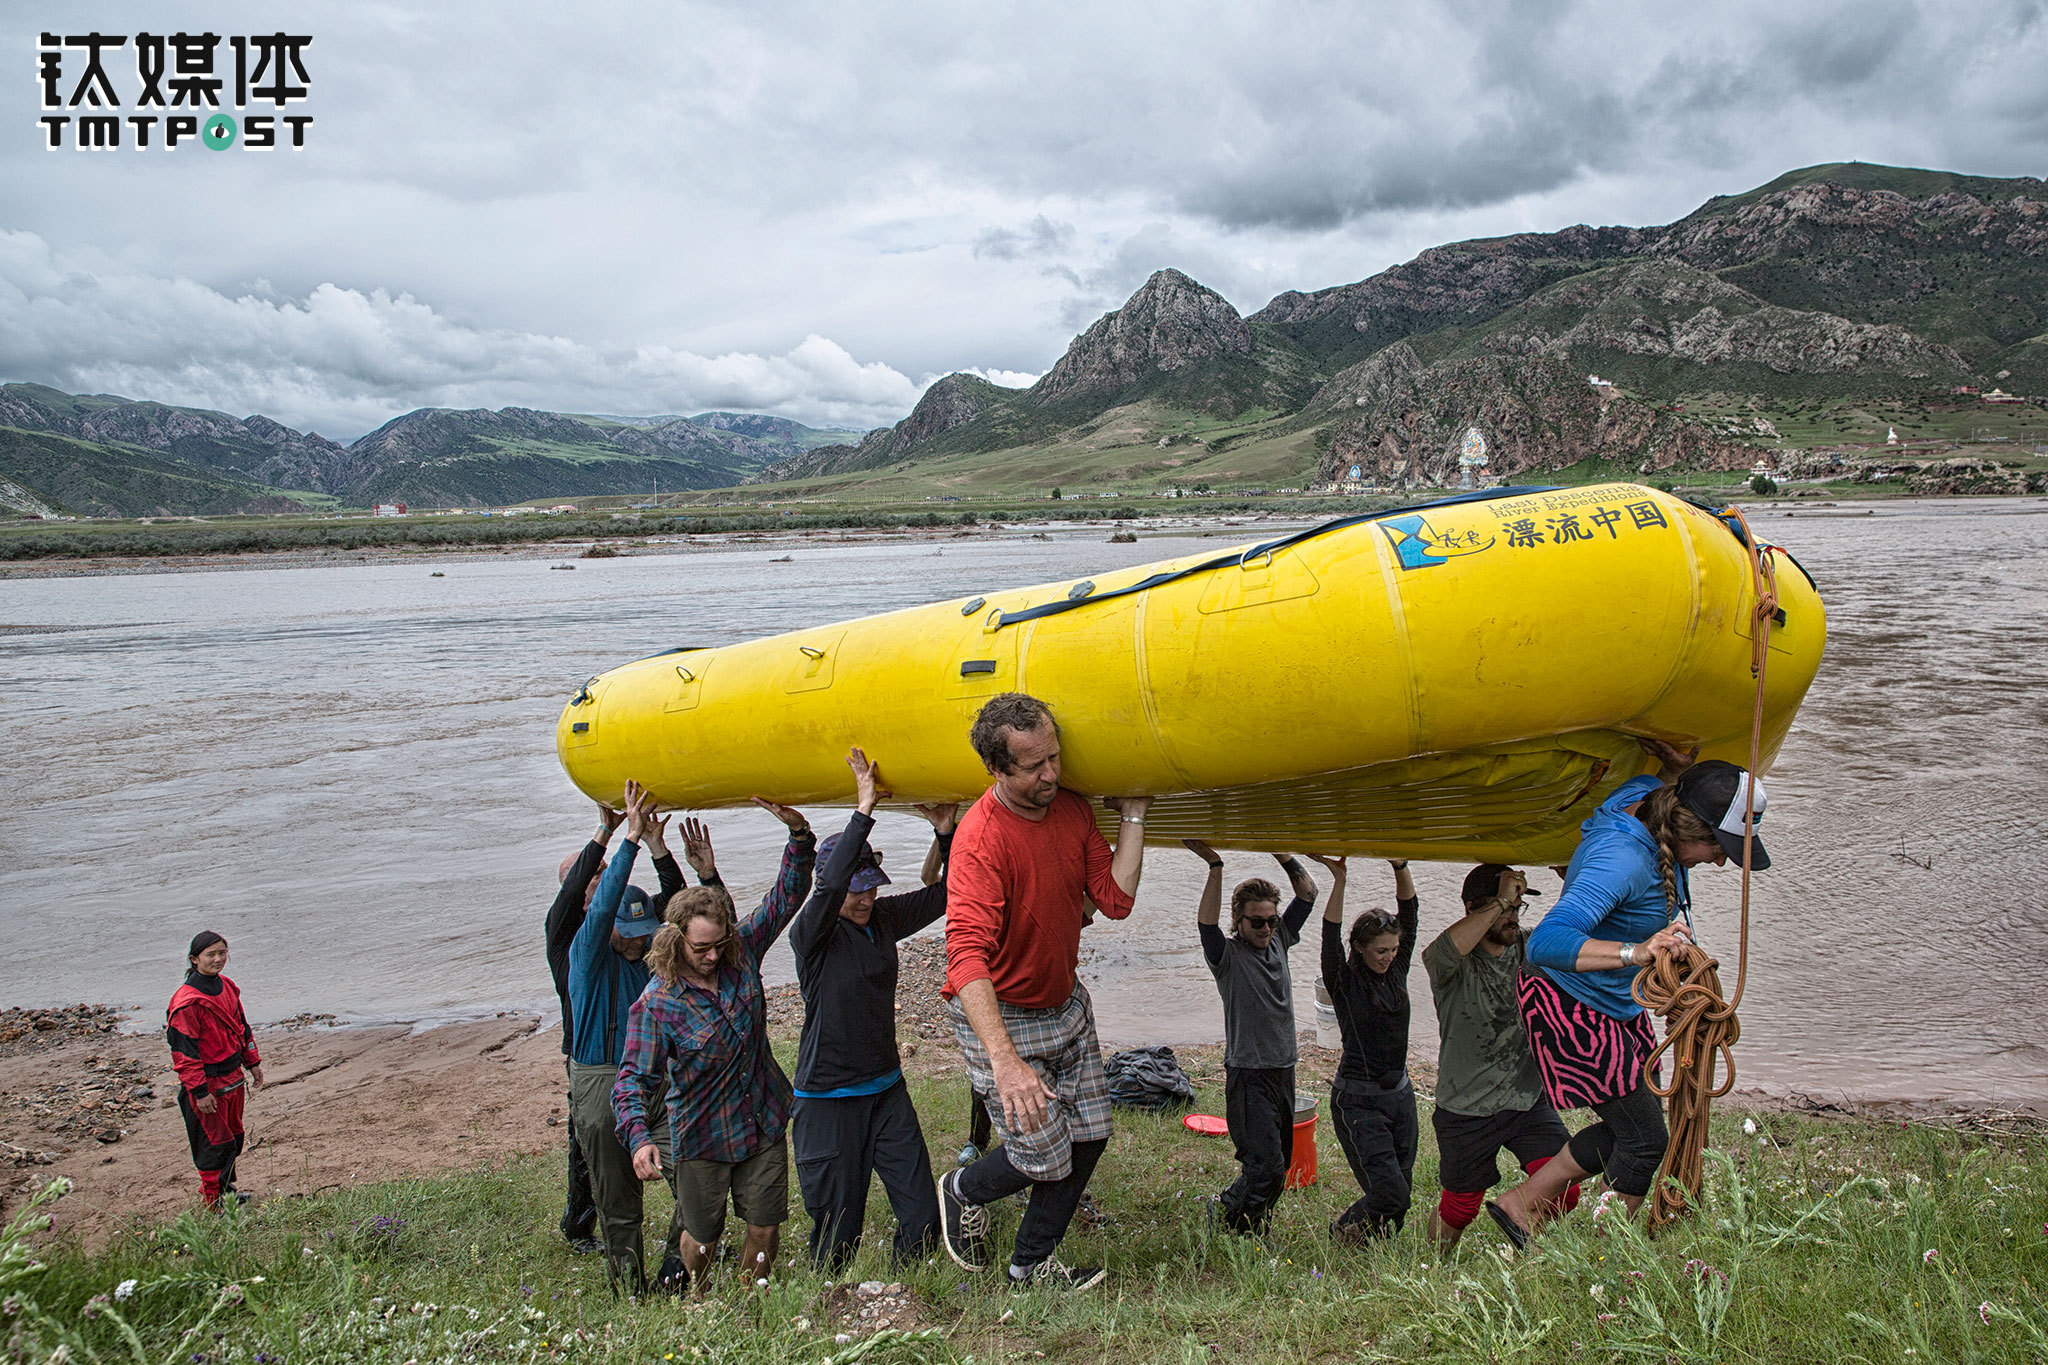 July 2nd, afternoon. The rafting journey had come to an end as the rafting team reached the final destination. The captains and guests unloaded all necessities and equipment together and washed the boats, then carried the boats back to the shore.